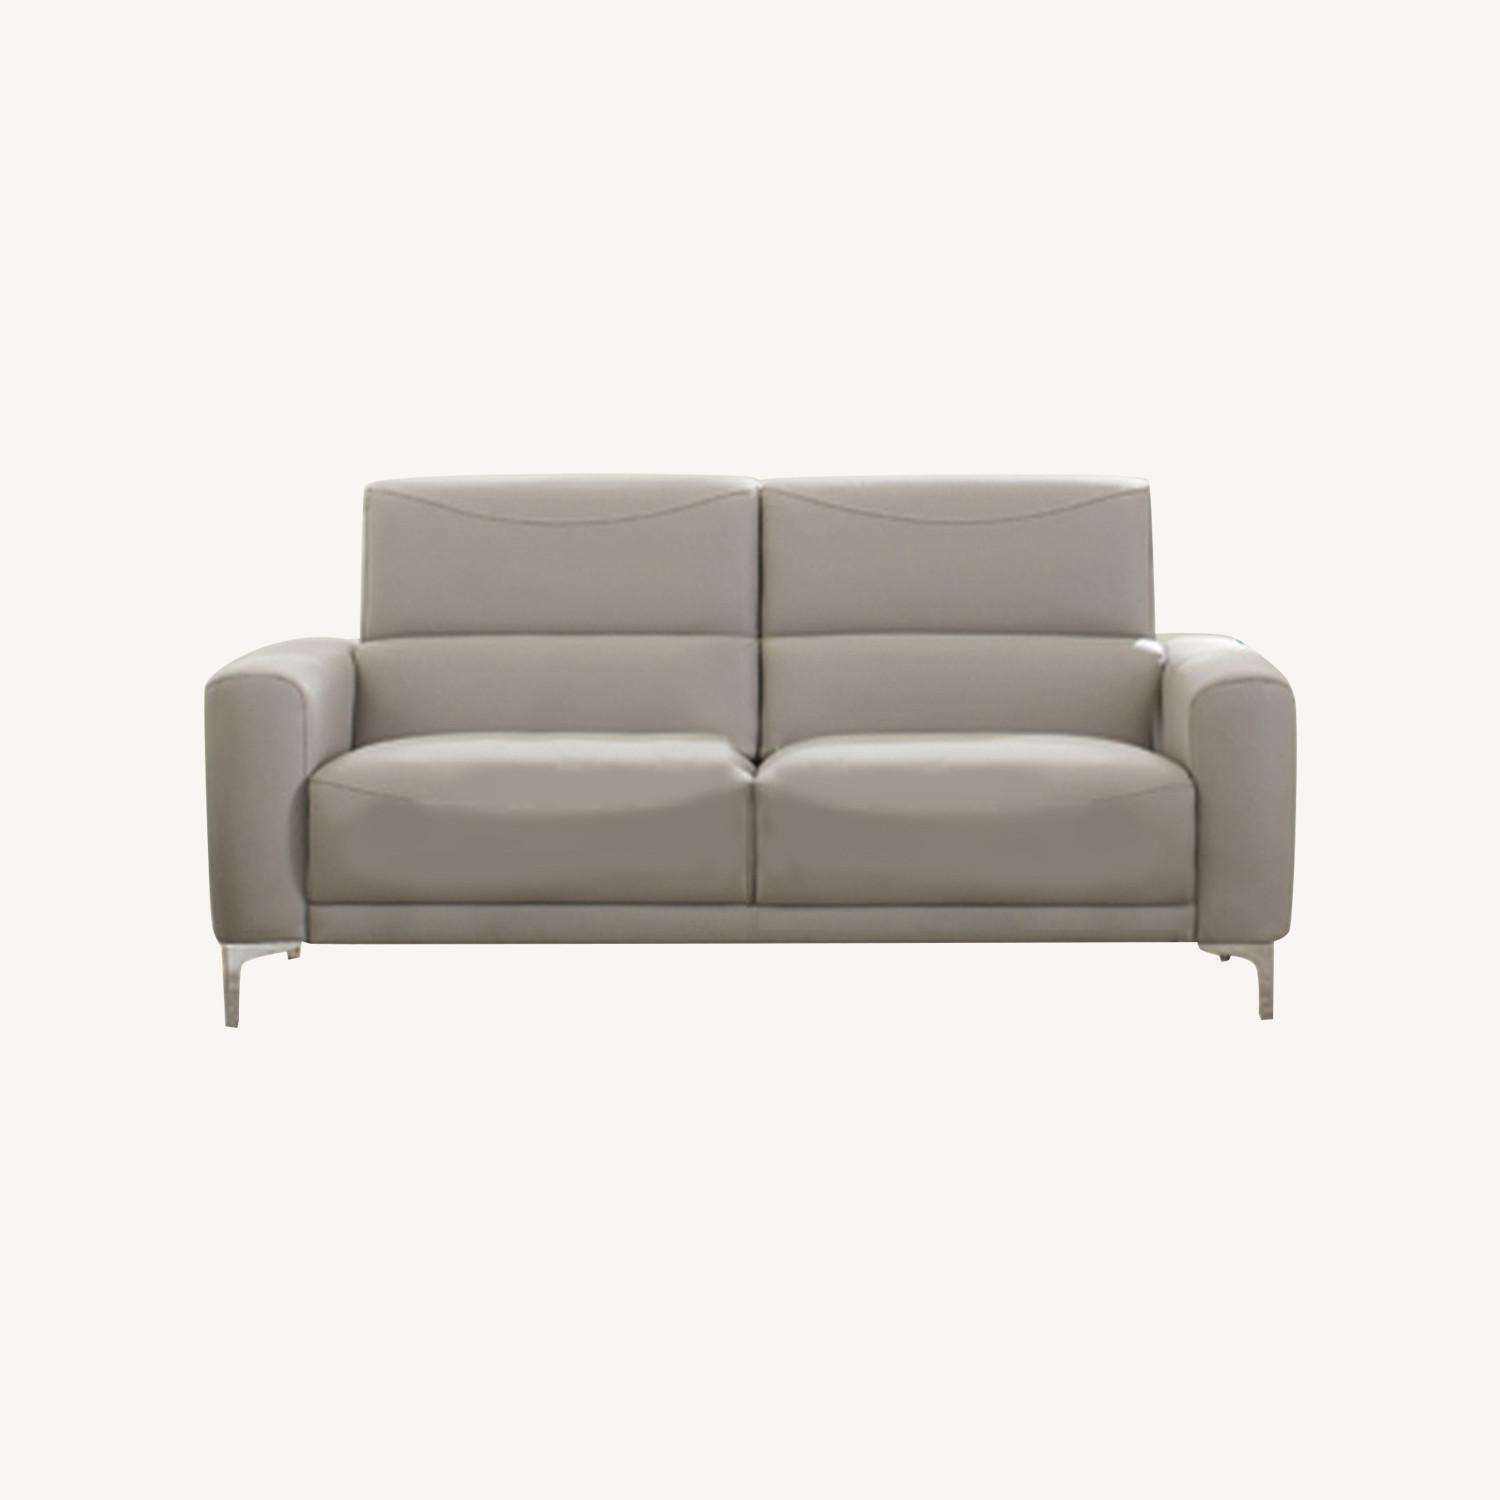 Sofa In Taupe Leatherette W/ Tall Metal Legs - image-3